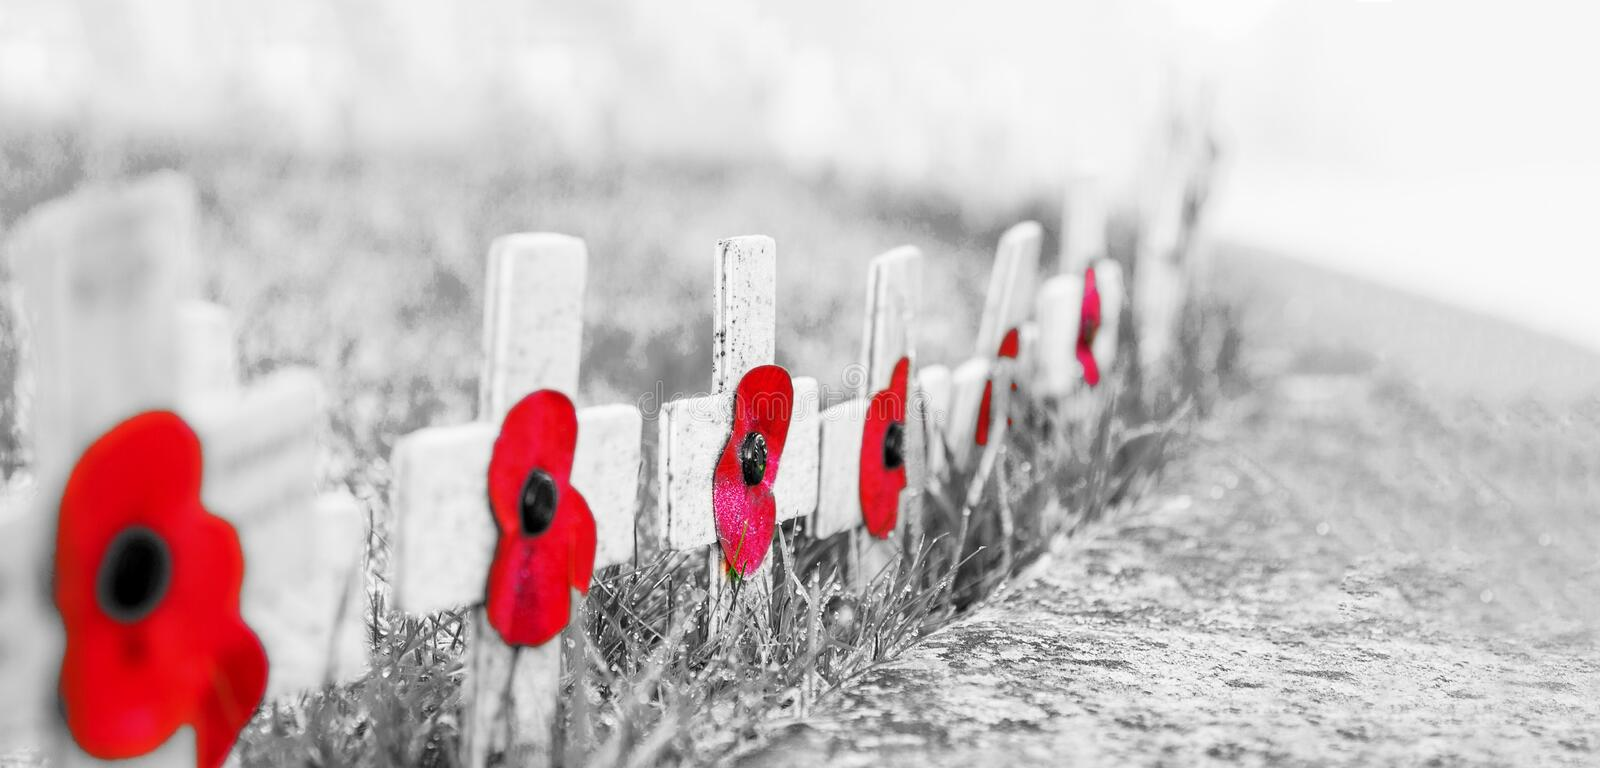 GRAINY BLACK and WHITE WITH RED POPPIES SELECTIVE FOCUS - Remembrance Day Poppies on wooden crosses, on frosty grass royalty free stock photo